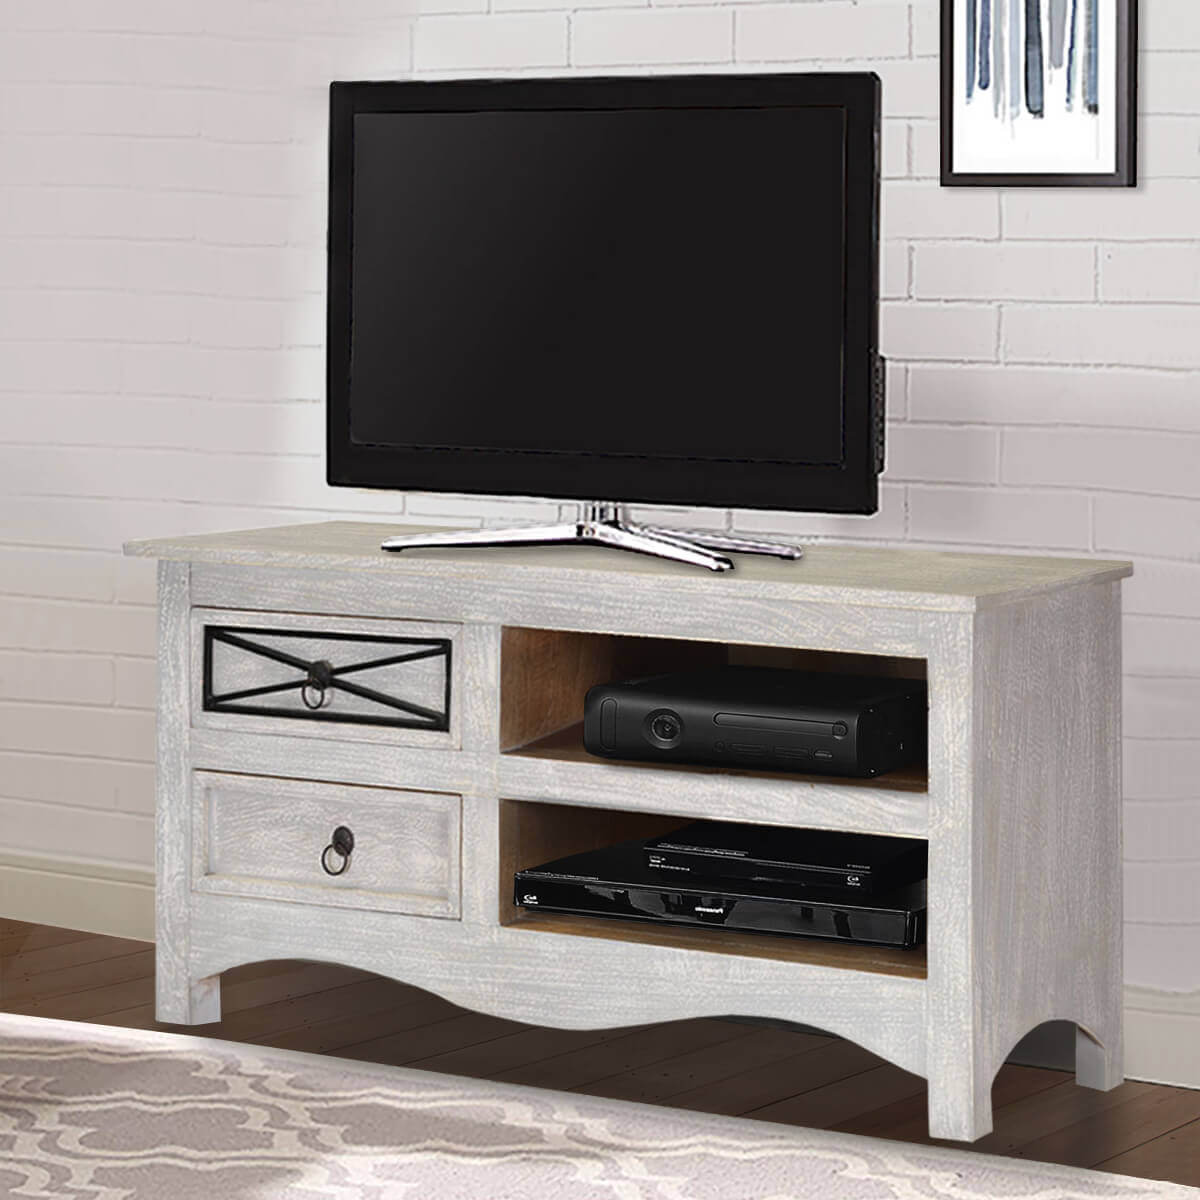 Early Winter White Rustic Mango Wood TV Entertainment Cabinet